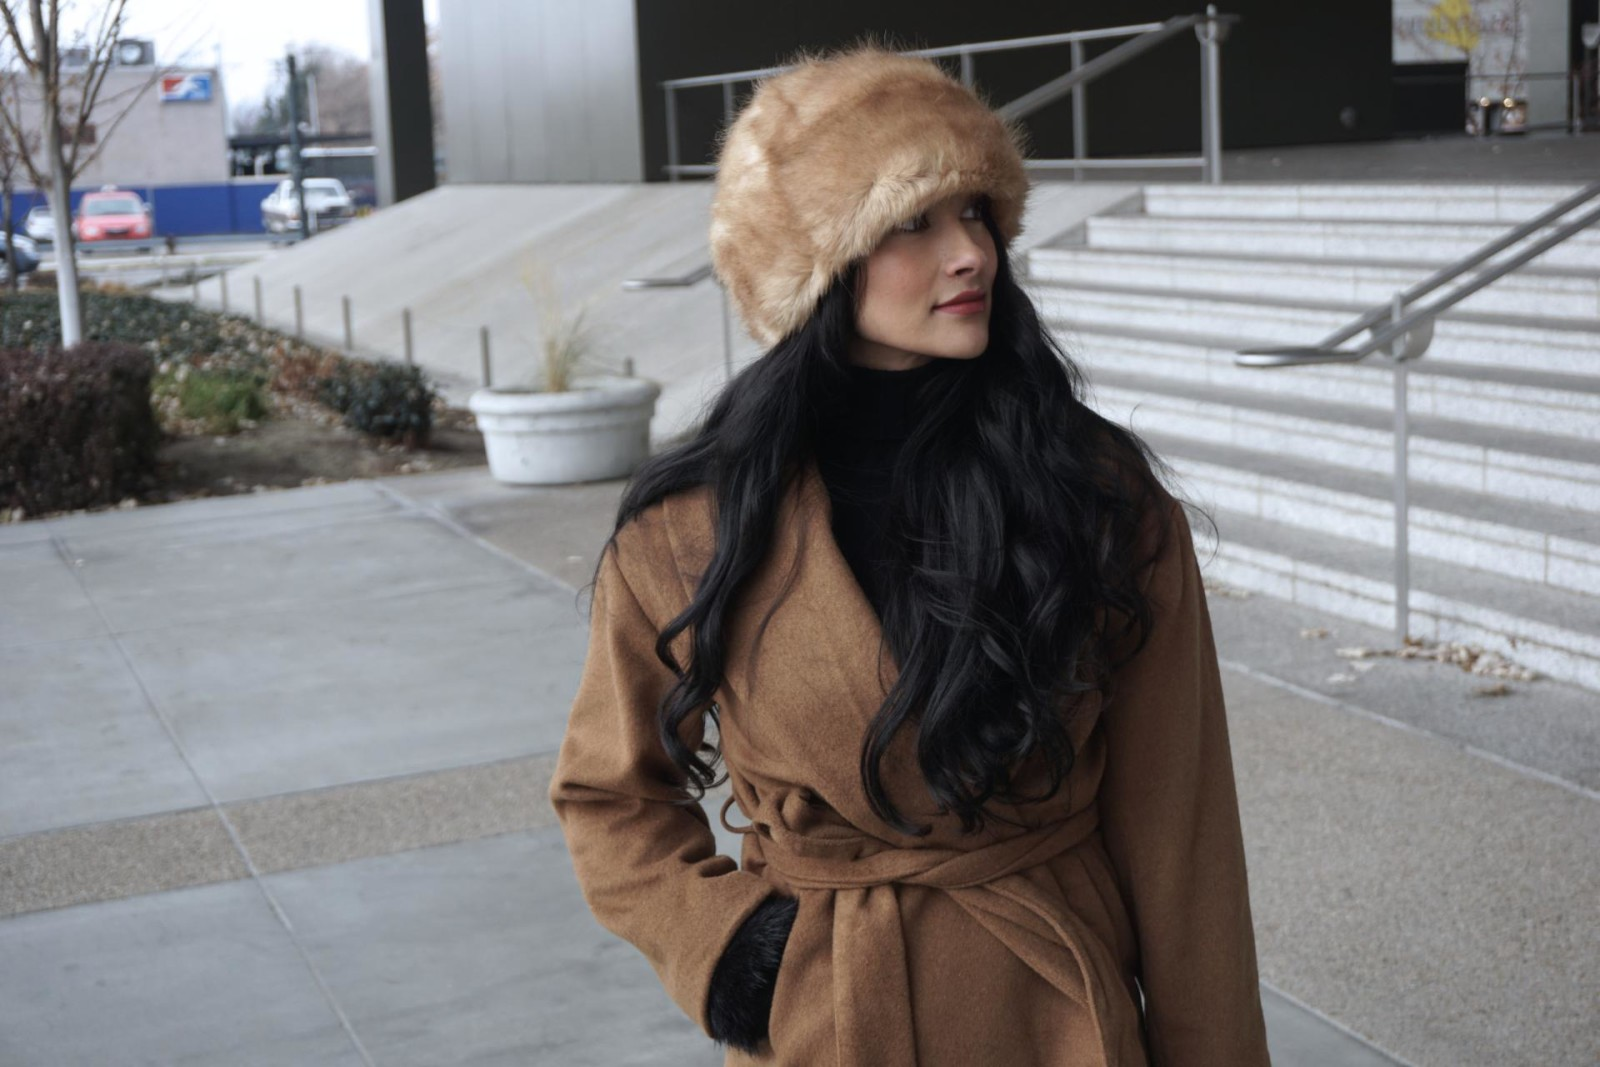 HM Camel Coat, Wool-blend Coat, Zara Fur Hat, Leopard Heels, Stilettos